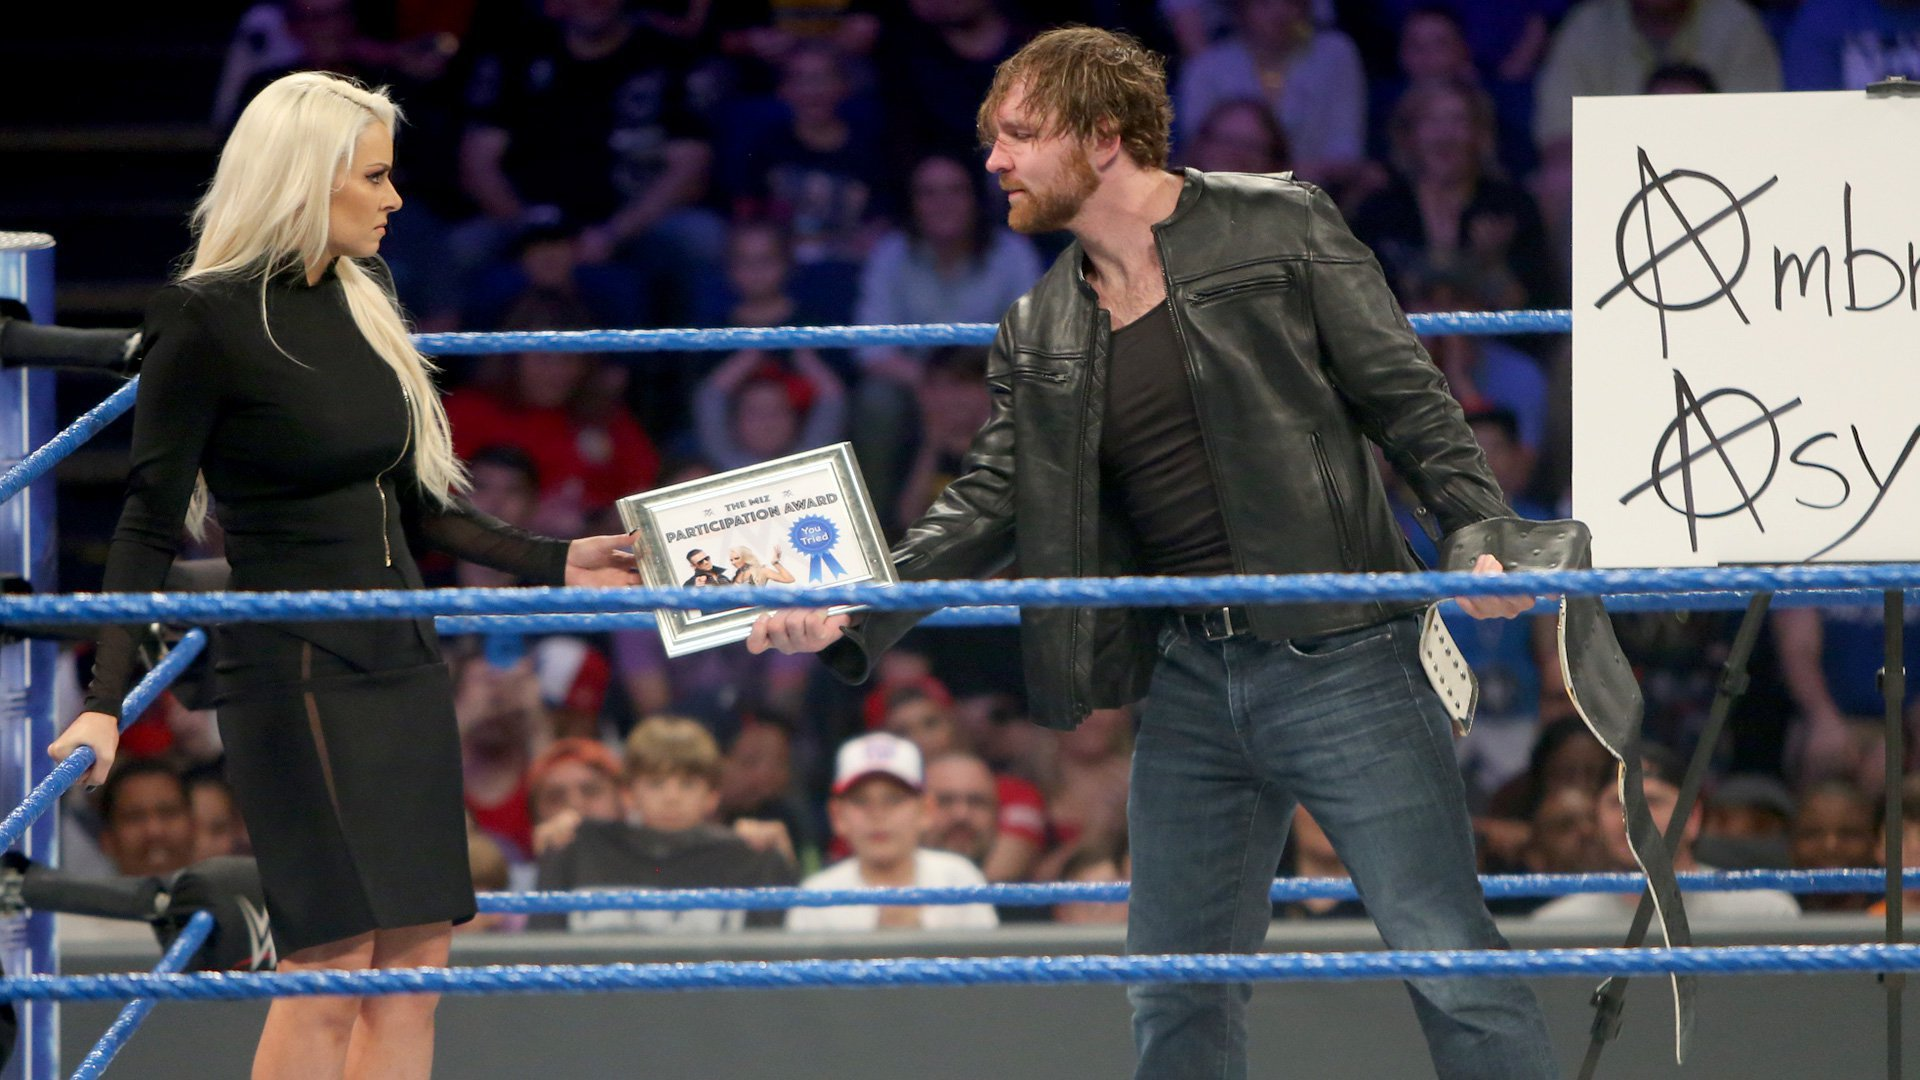 He then hands the award to Maryse.